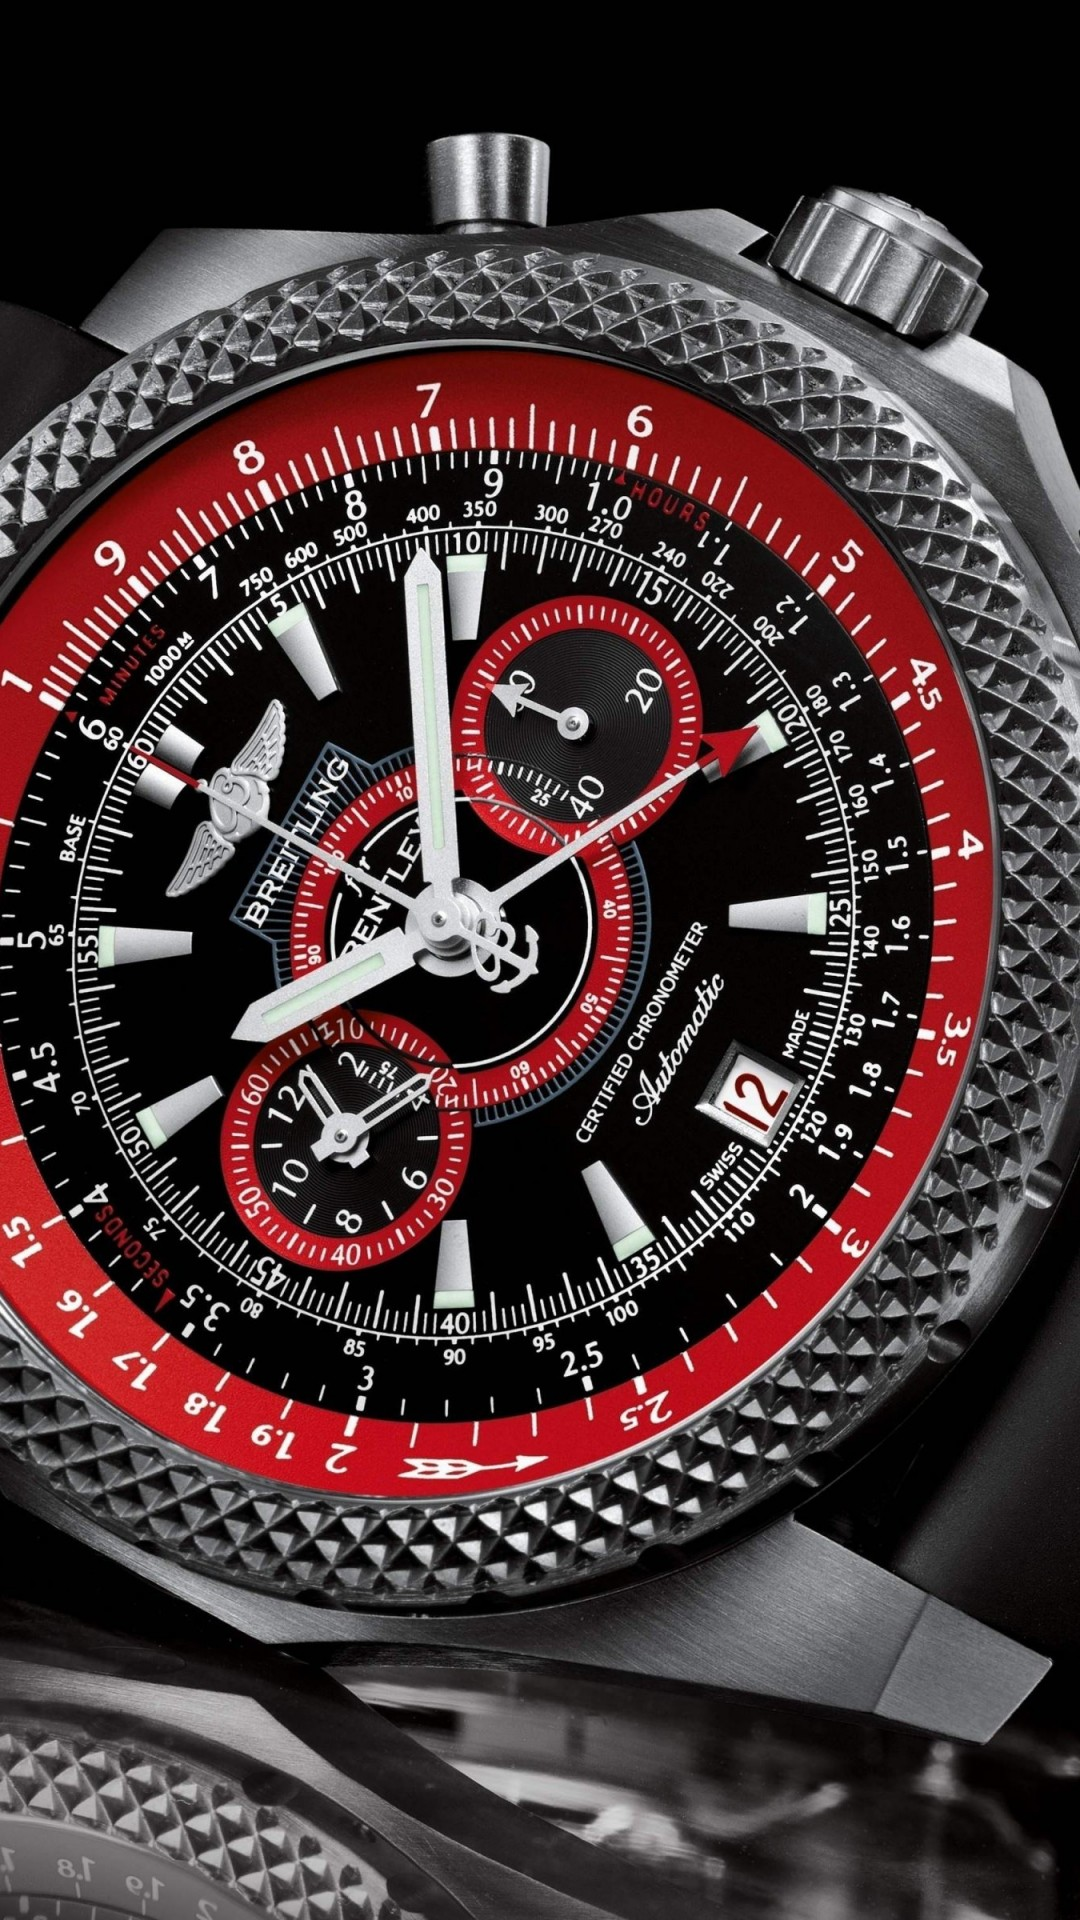 Breitling Watch Wallpaper for SAMSUNG Galaxy S5